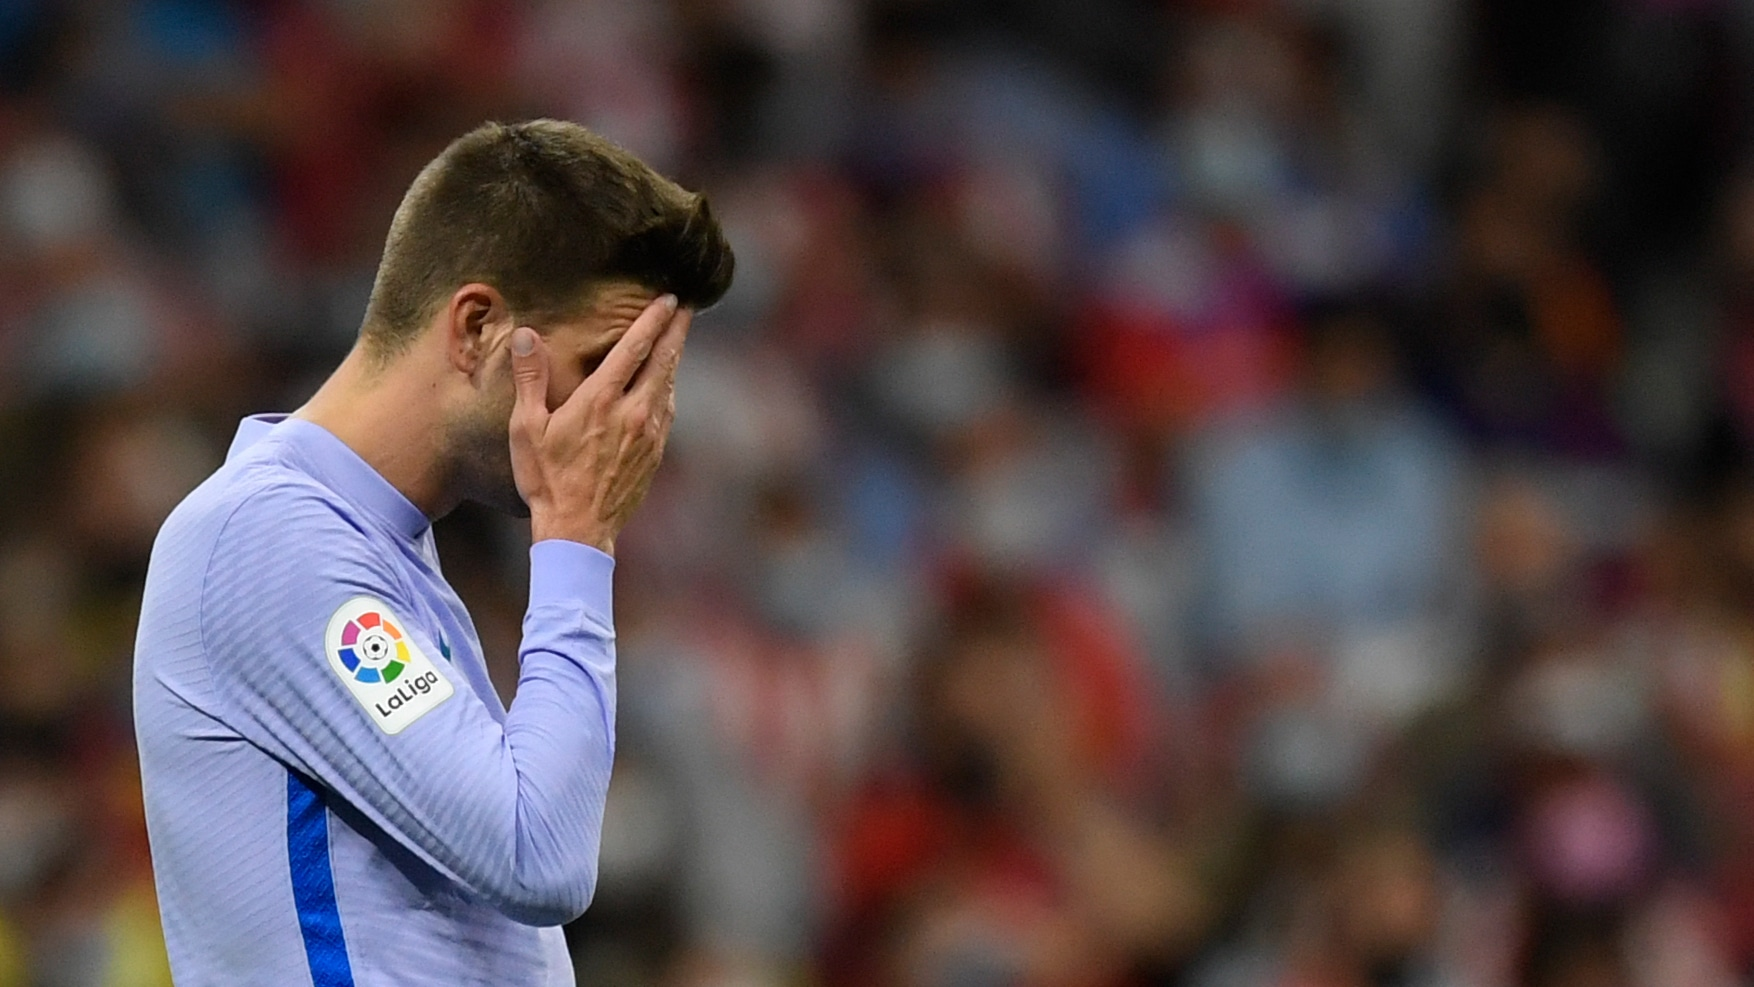 'Barcelona Could Have Played For Three Hours And Still Not Scored' -Pique